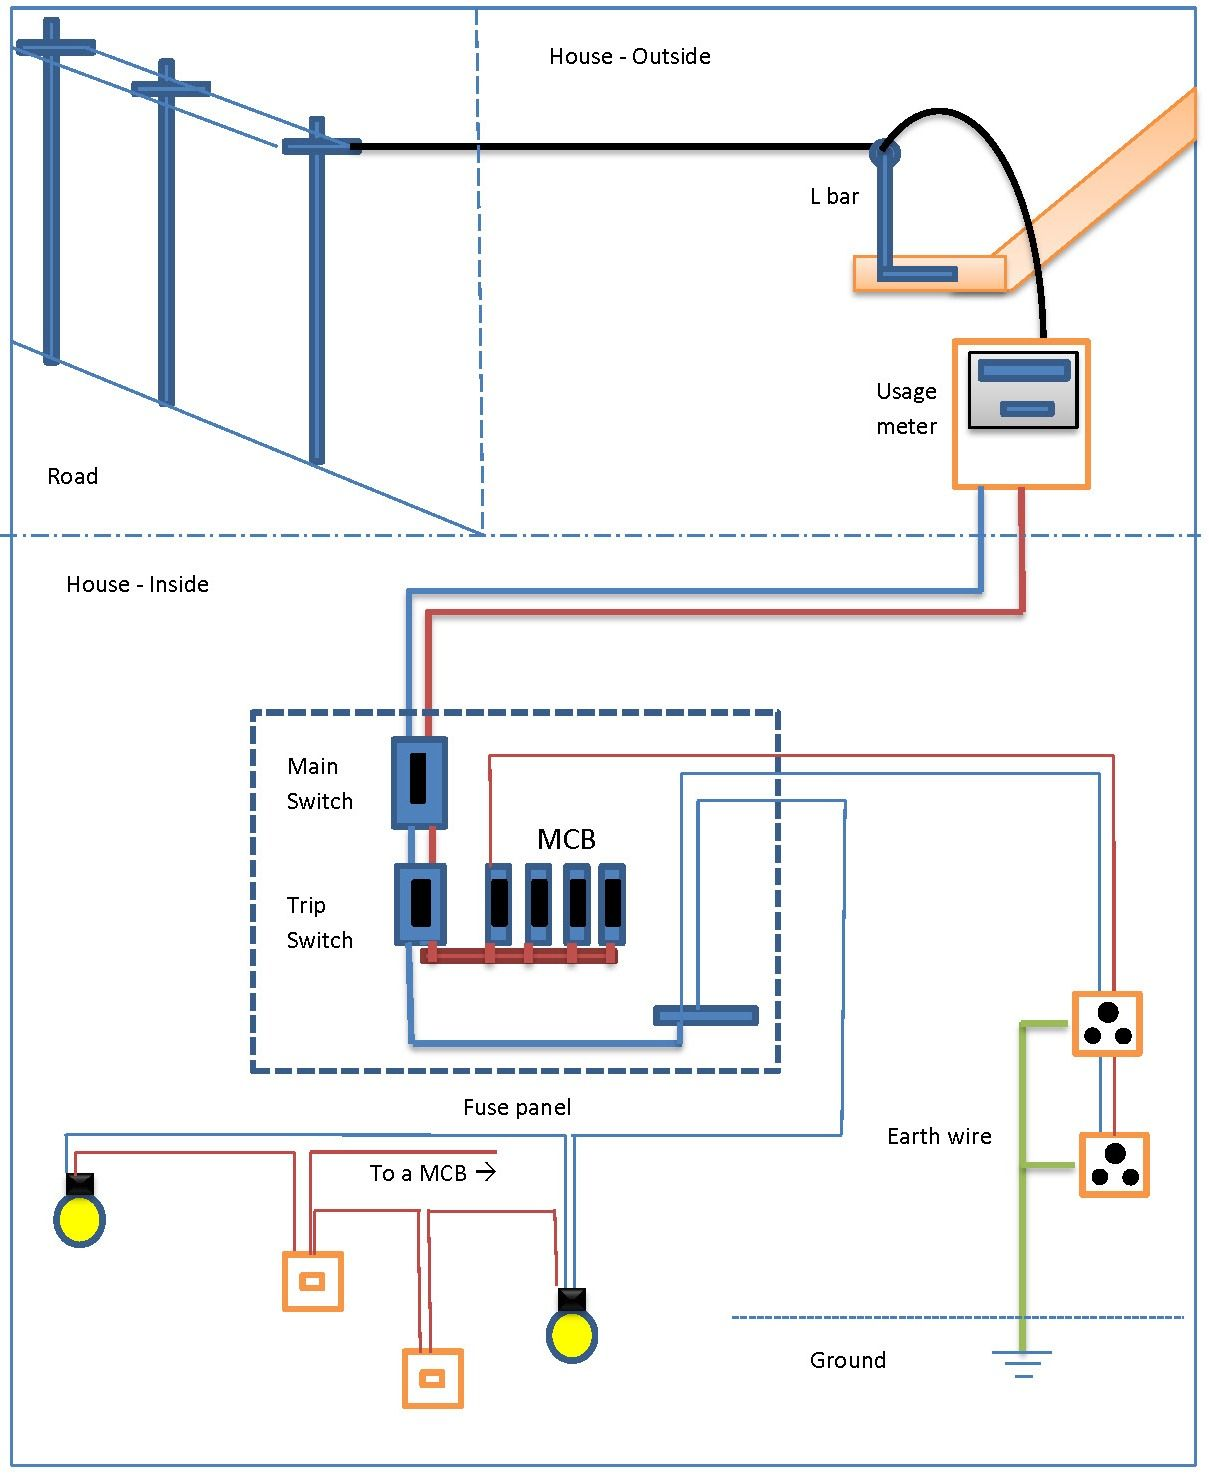 Senasum39s blog House Wiring Diagram Sri Lanka | uno in ...